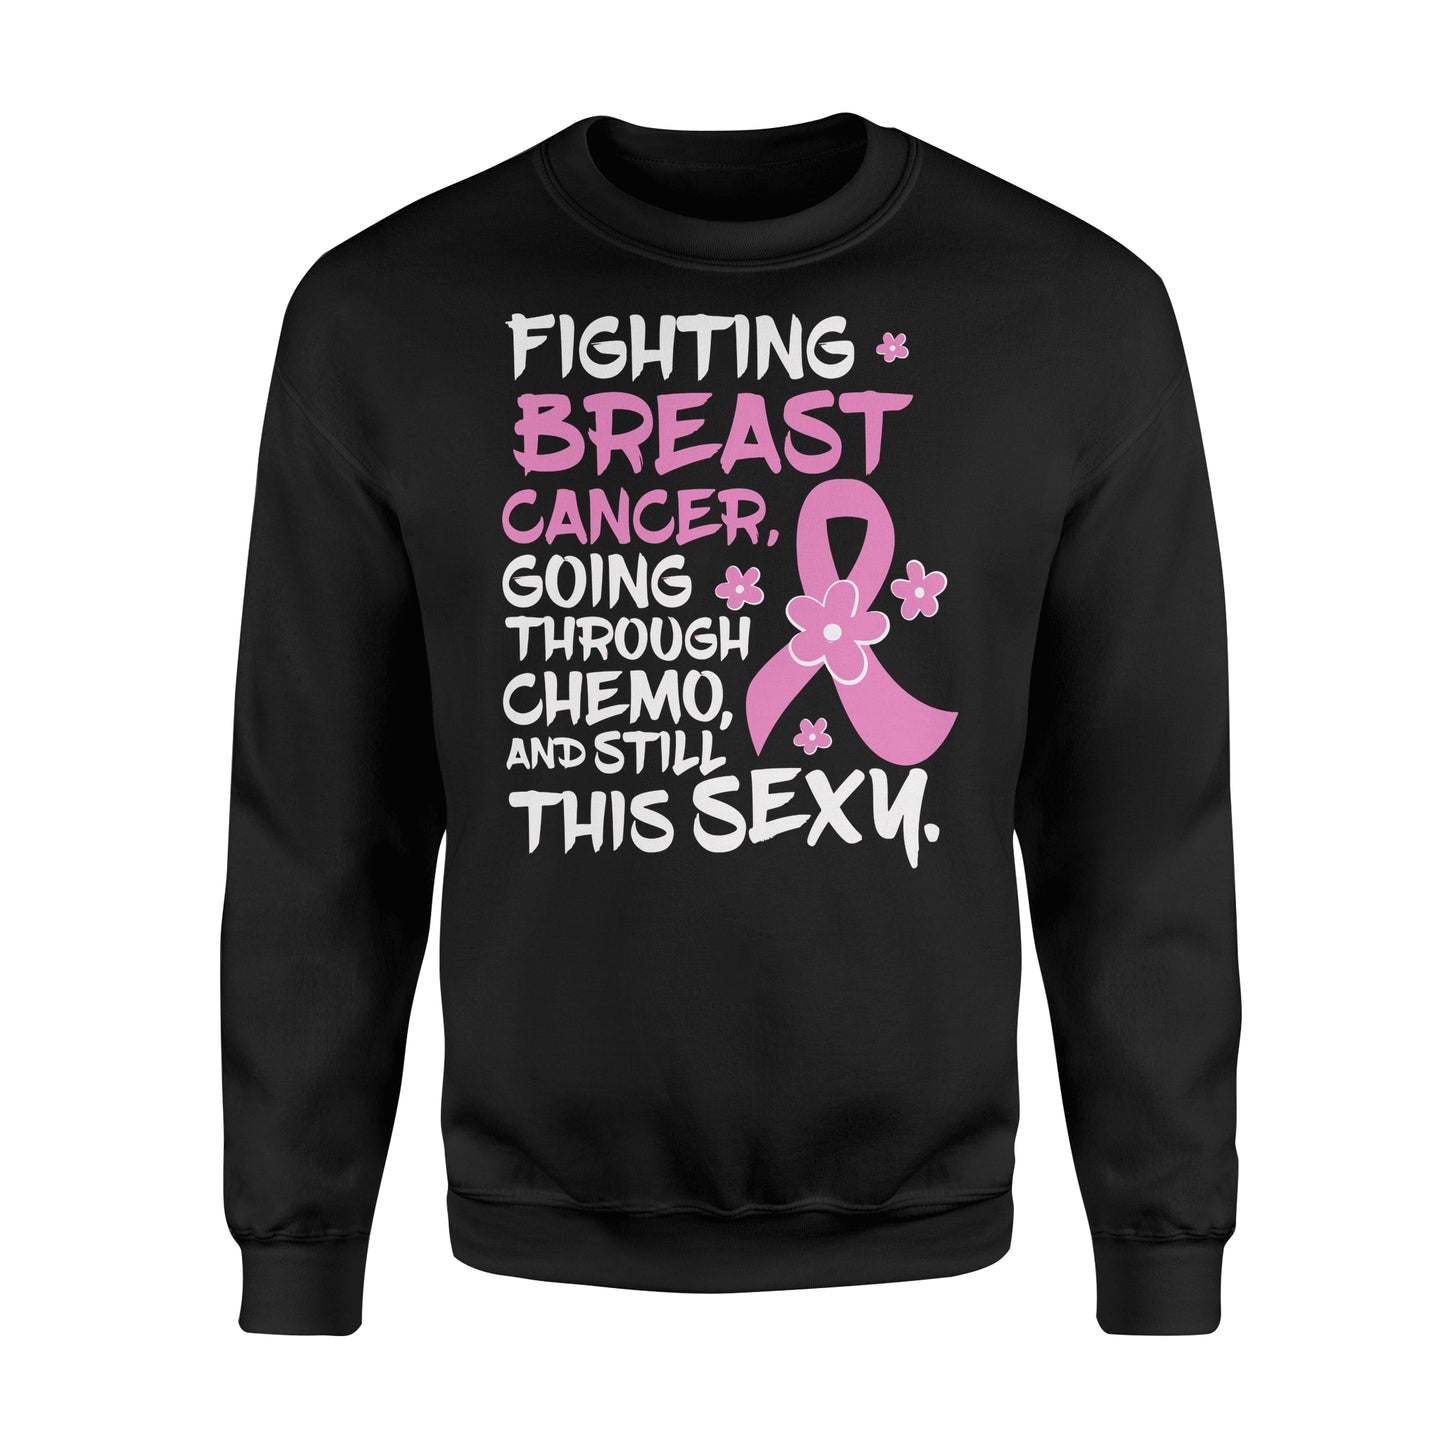 Fighting Breast Cancer Going Through Chemo and Still This Sexy - Standard Fleece Sweatshirt Apparel S / Black